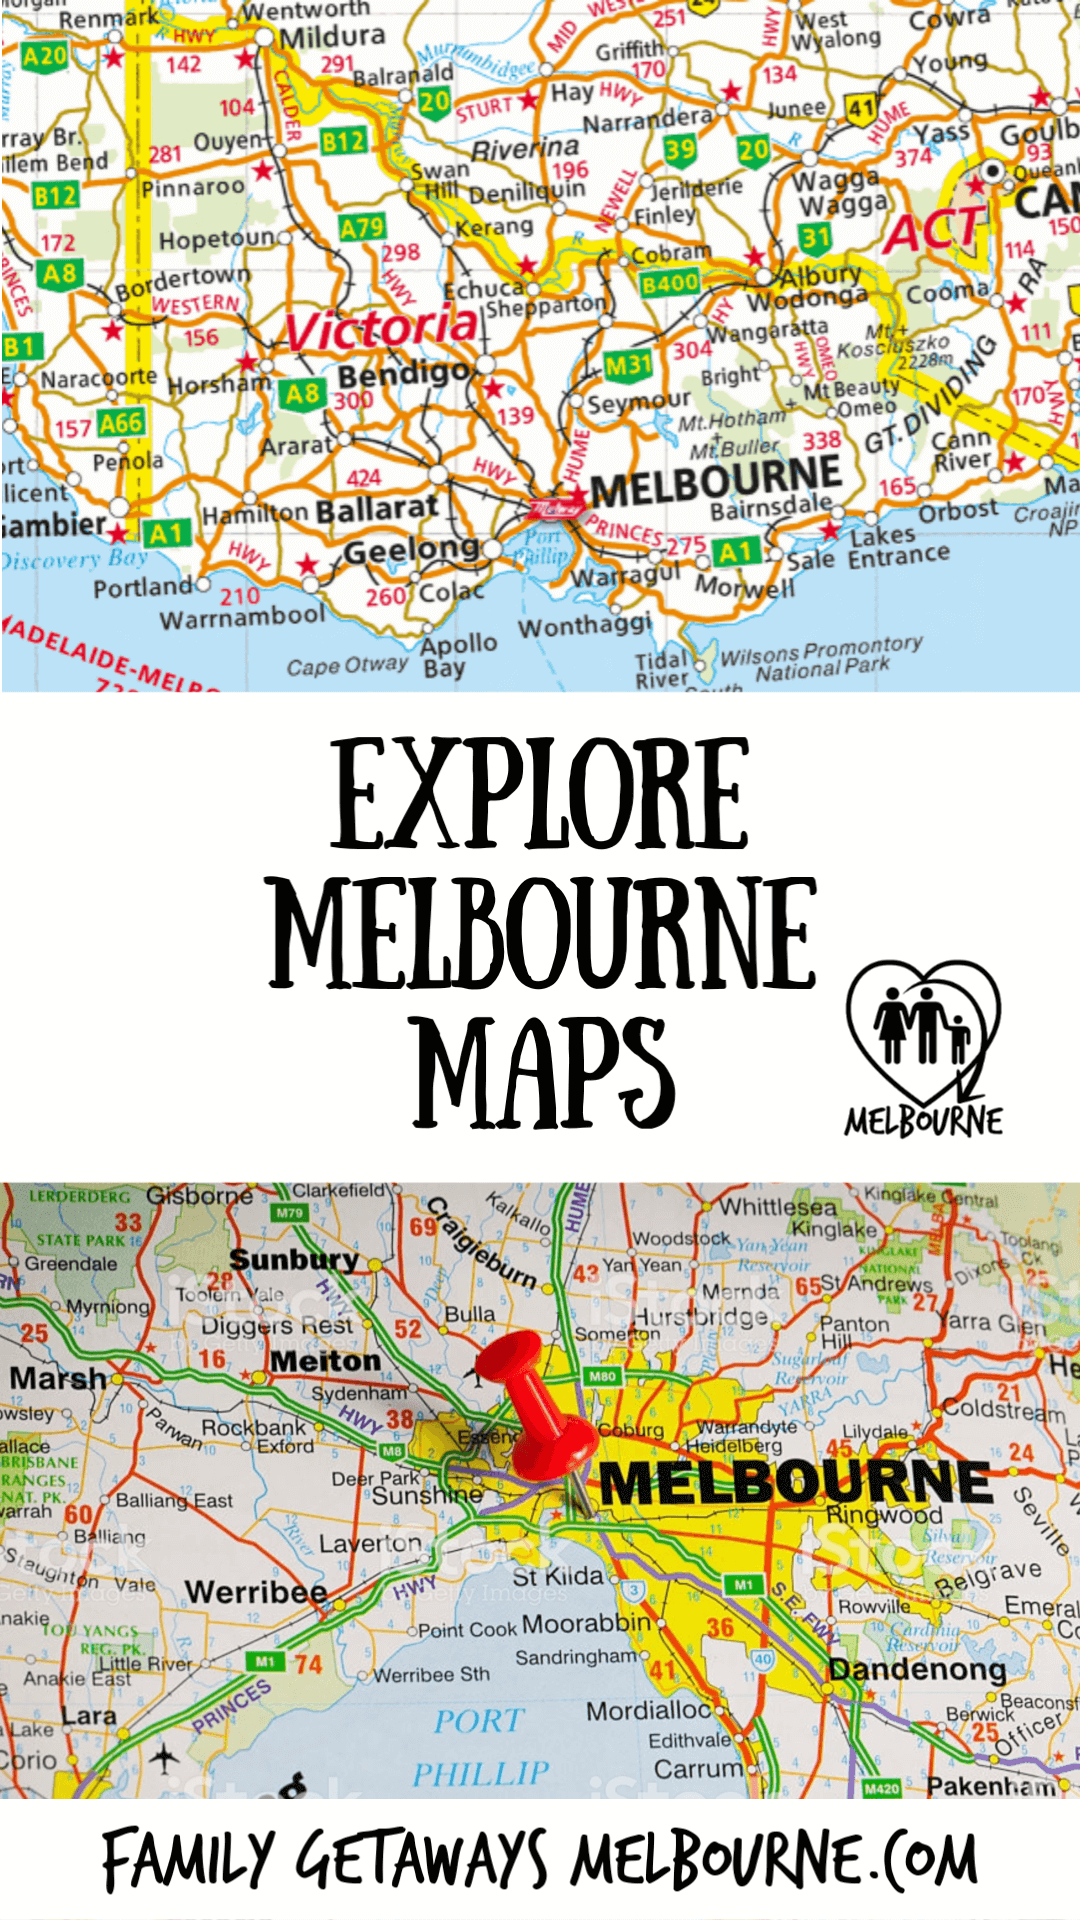 Getting around Melbourne with maps makes it so much easier